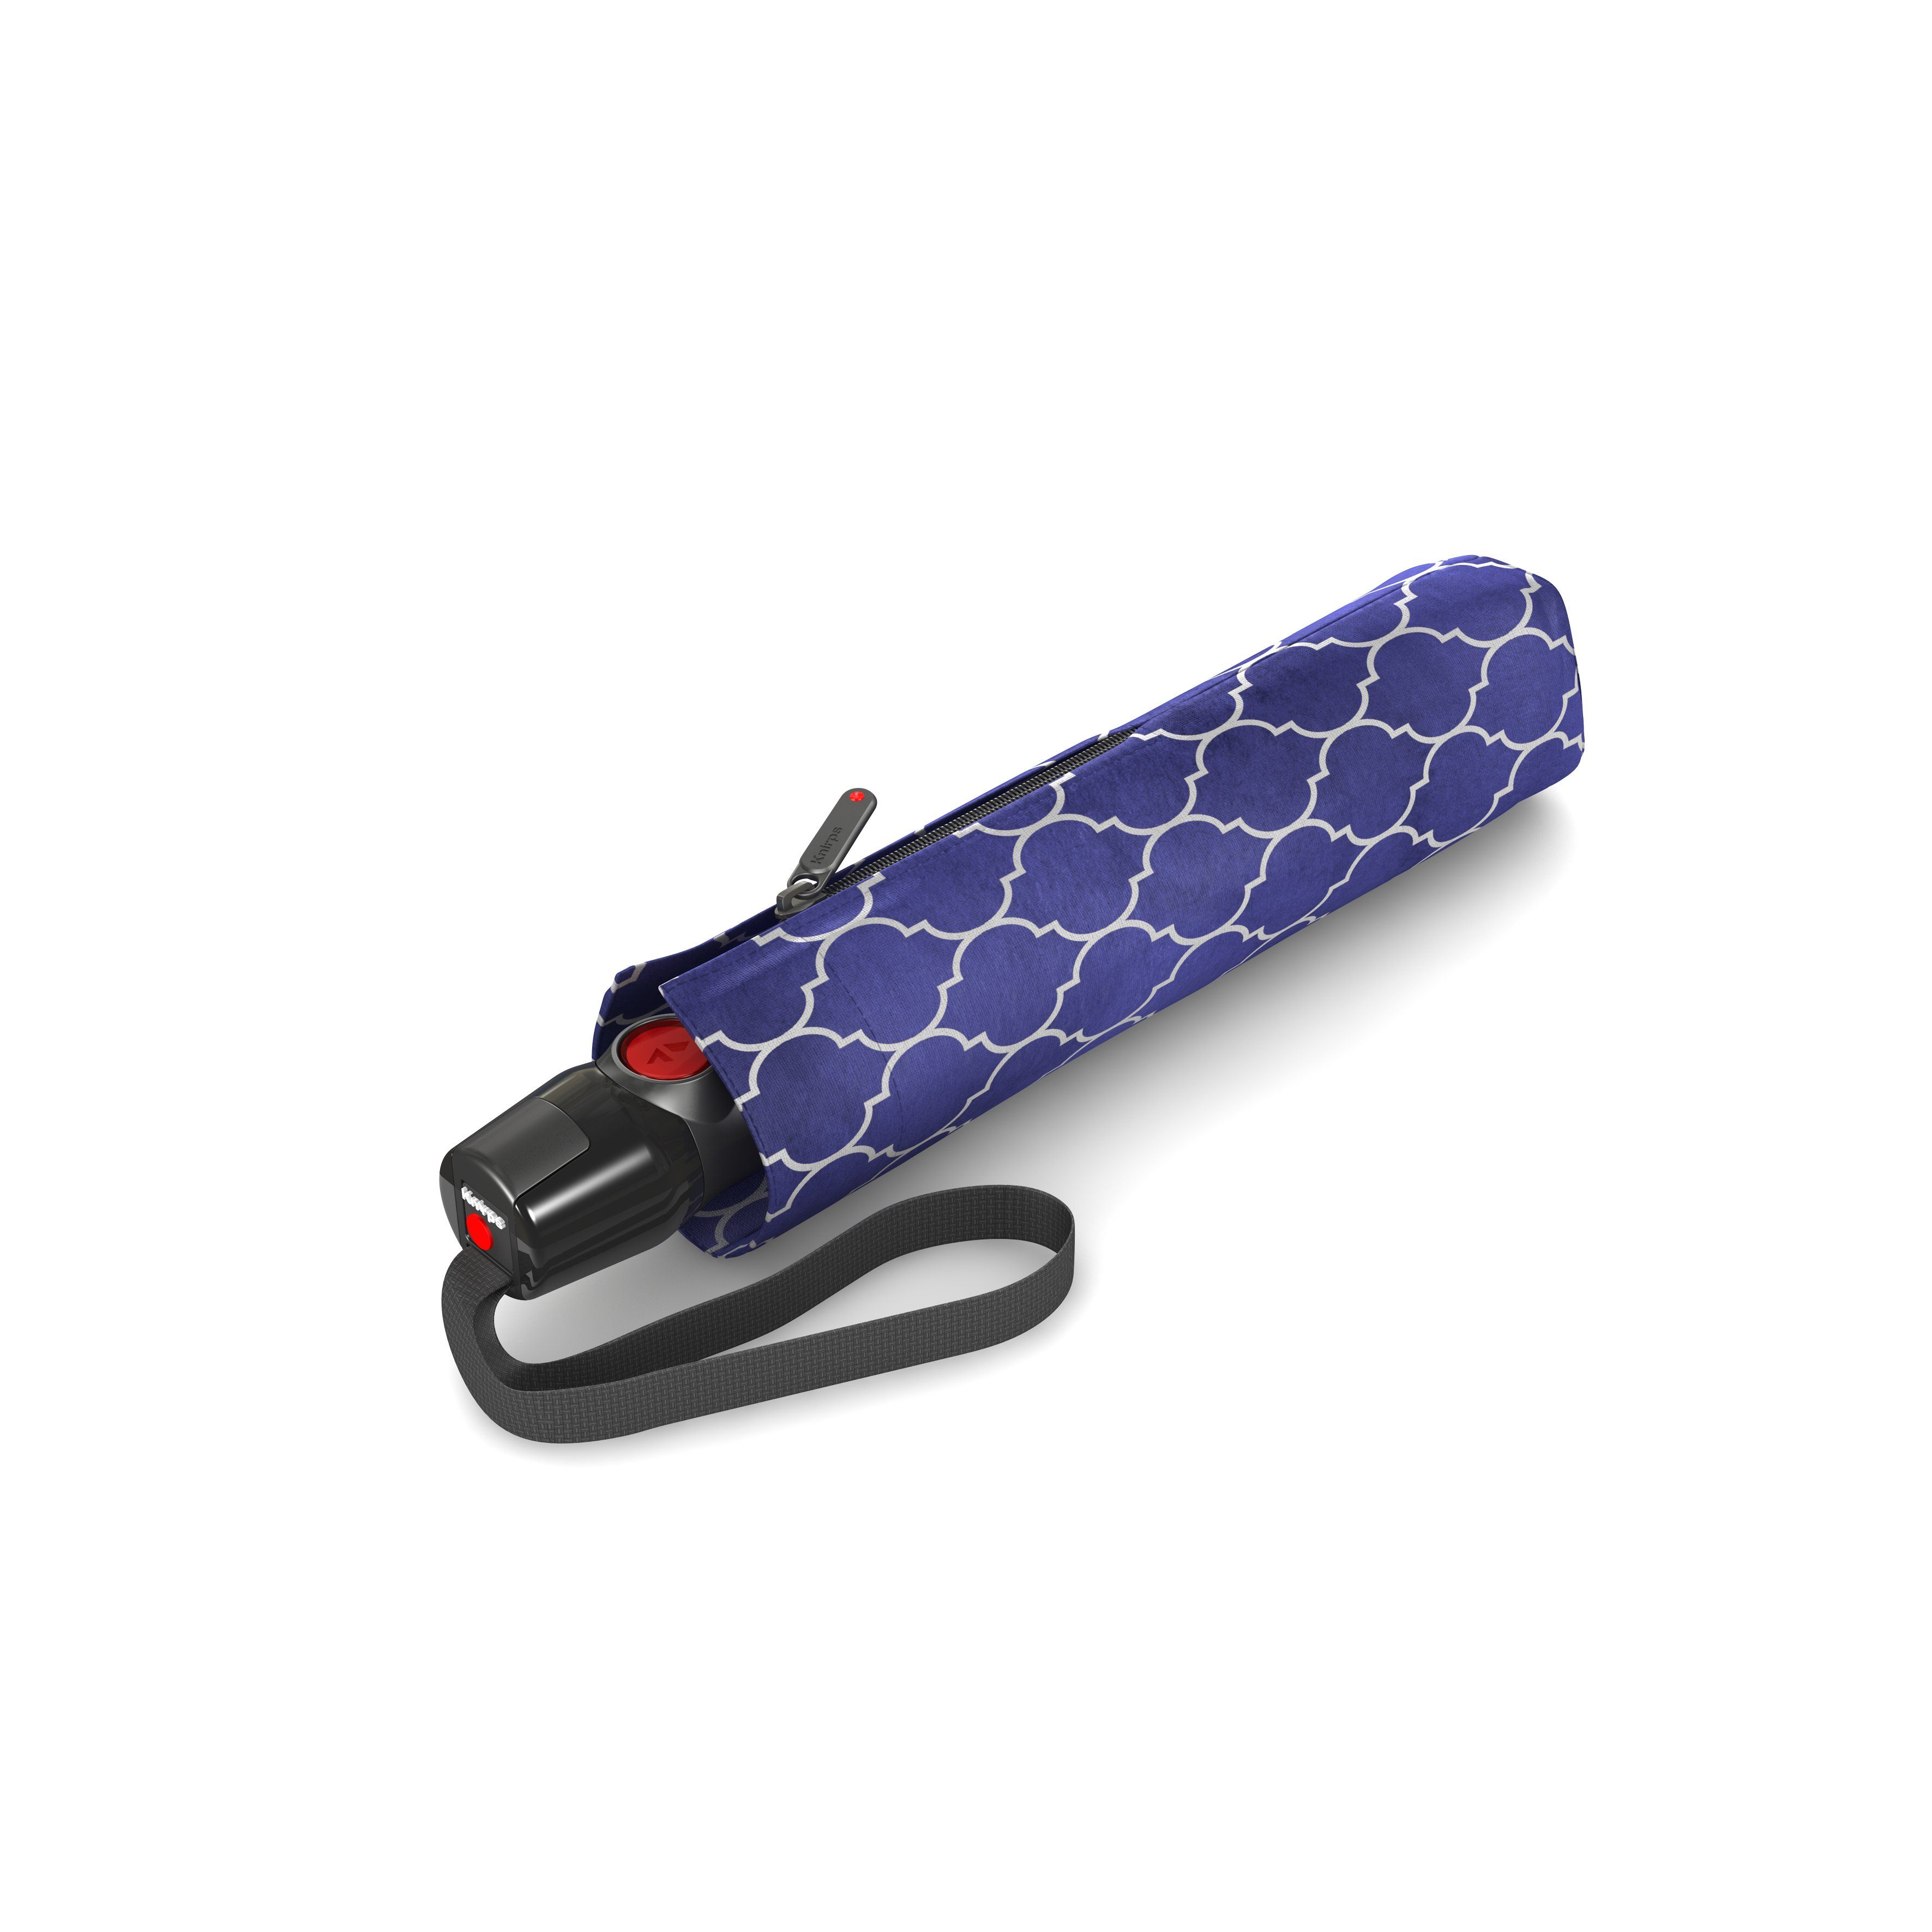 Knirps Umbrella Knirps T.200 medium duomatic regenerate blue with UV Protection - foto 2